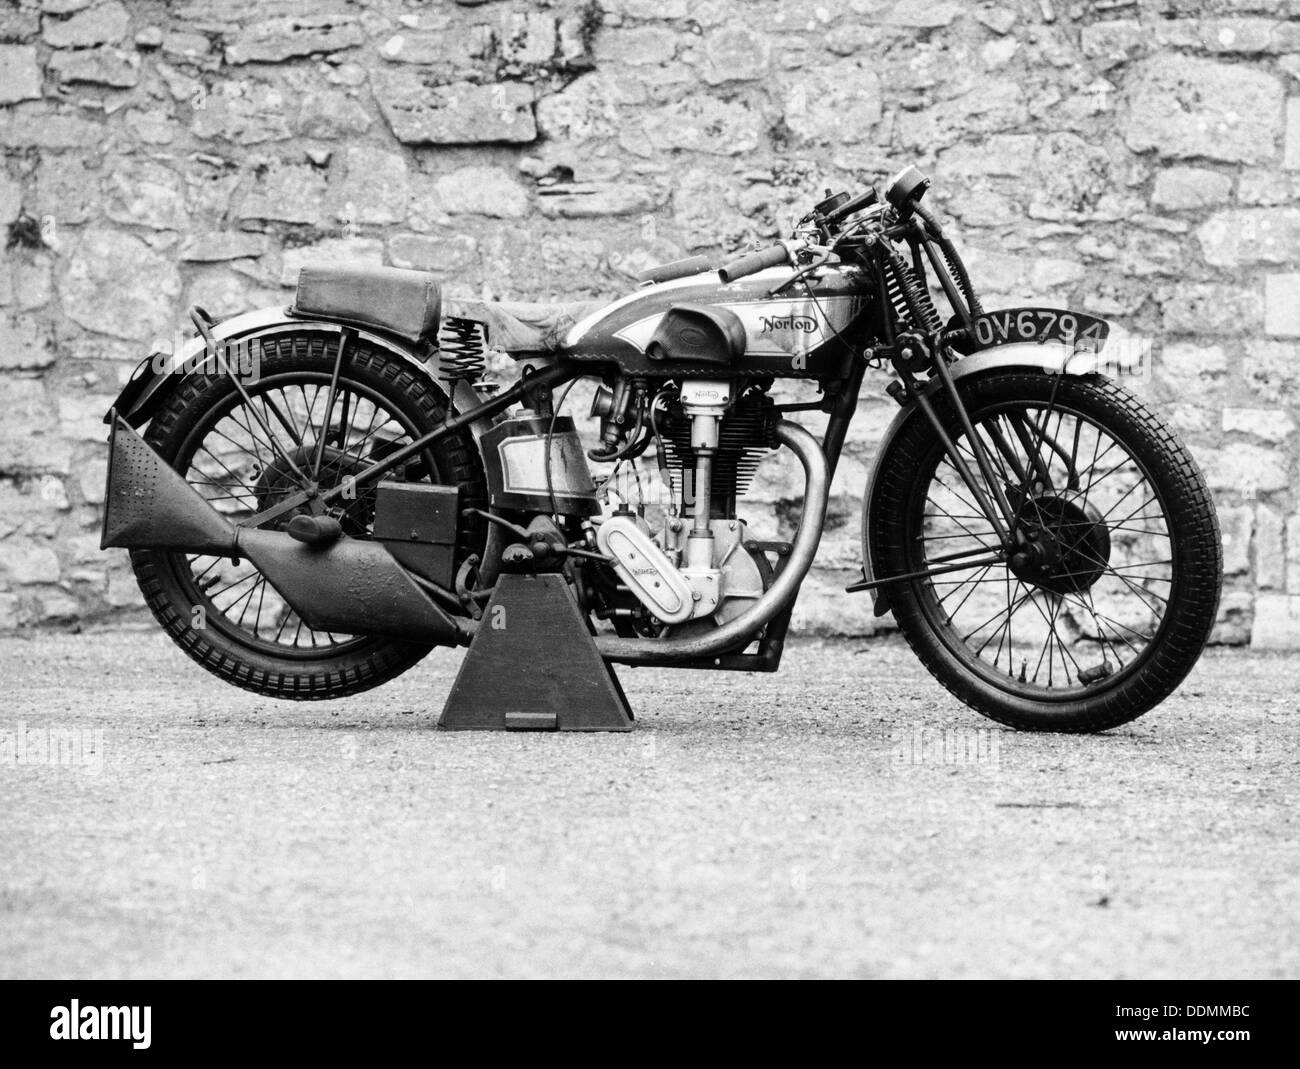 Norton motorbike, an International Model 30, 1932. - Stock Image